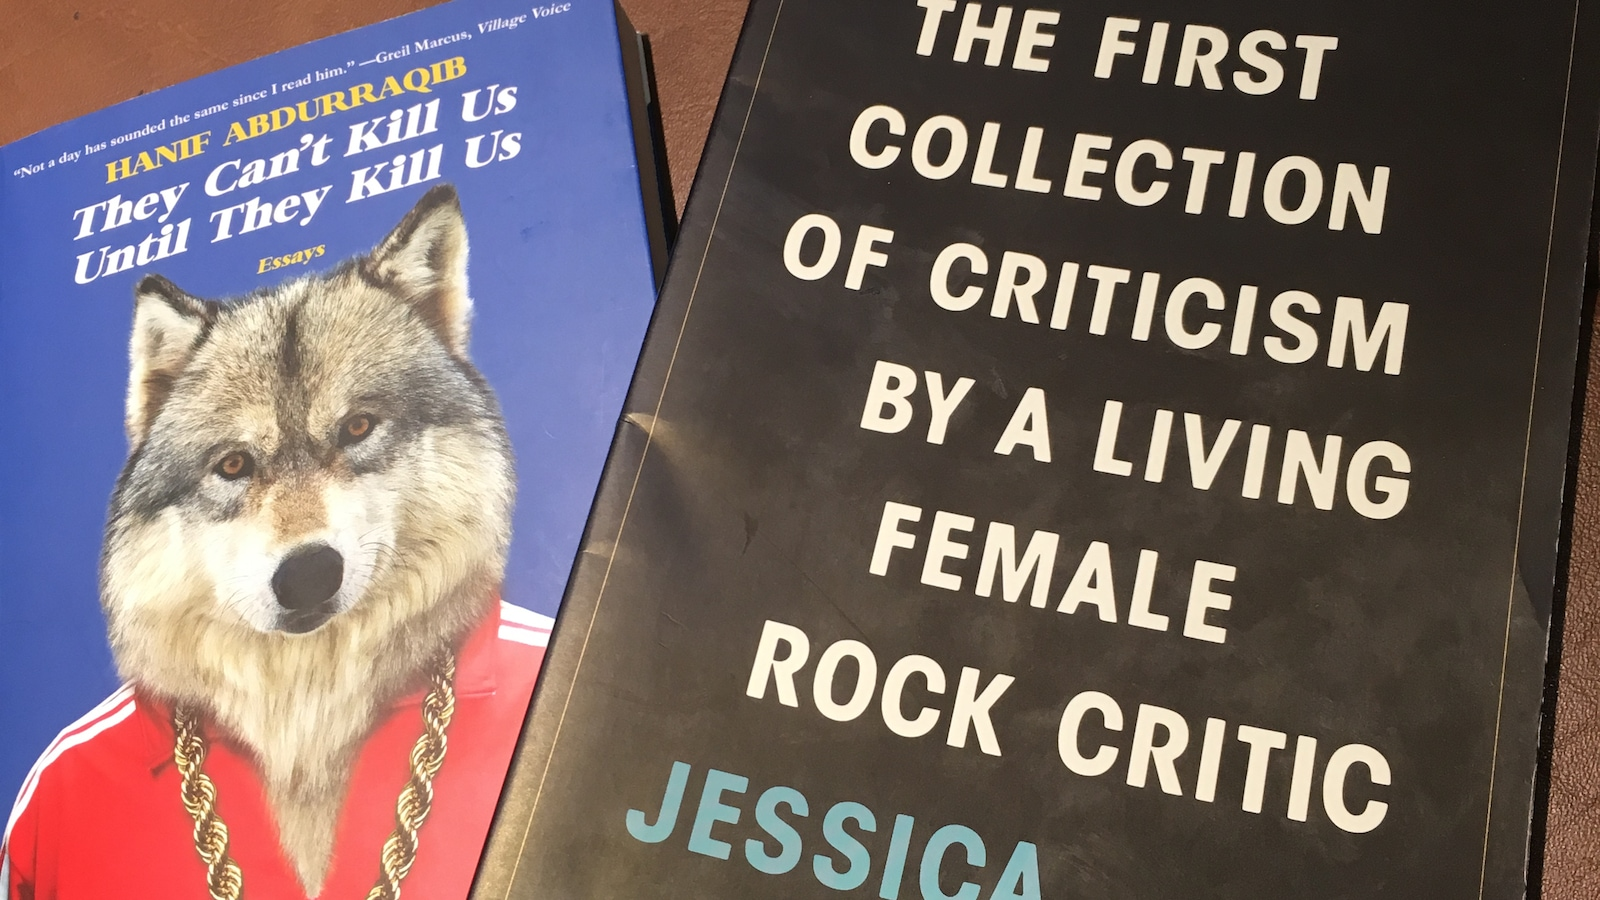 Les couvertures des livres « They Can't Kill Us Until They Kill Us » de Hanif Abdurraqib et « The First Collection of Criticism by a Living Female Rock Critic » de Jessical Hopper.